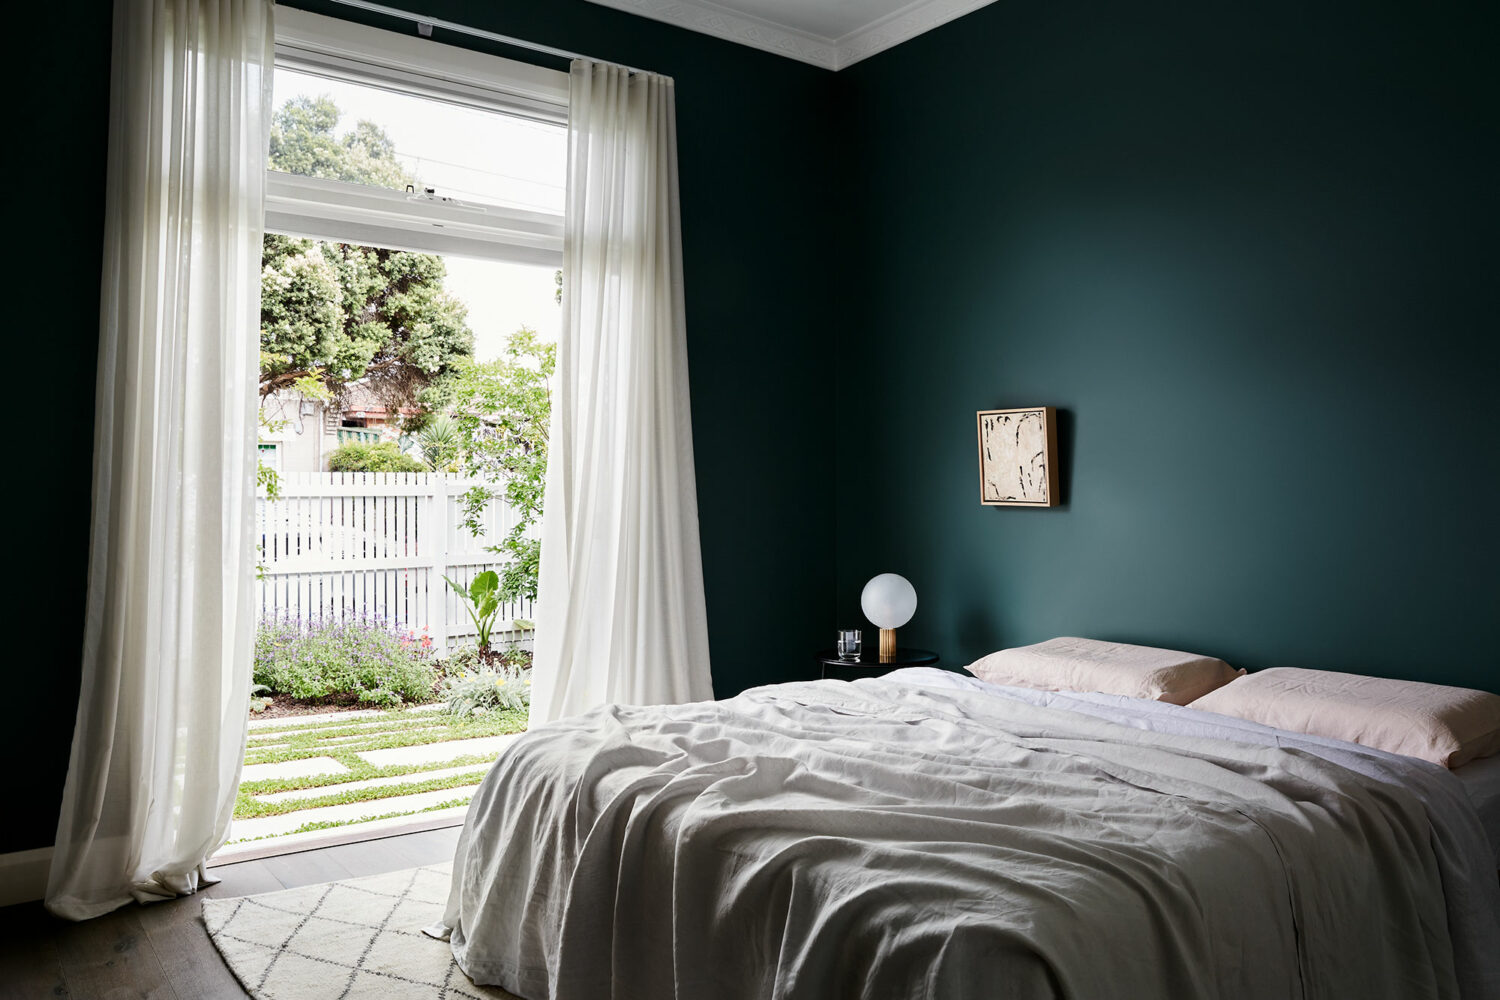 Maike Design dark teal bedroom opening onto private courtyard. Linen sheets and artwork.